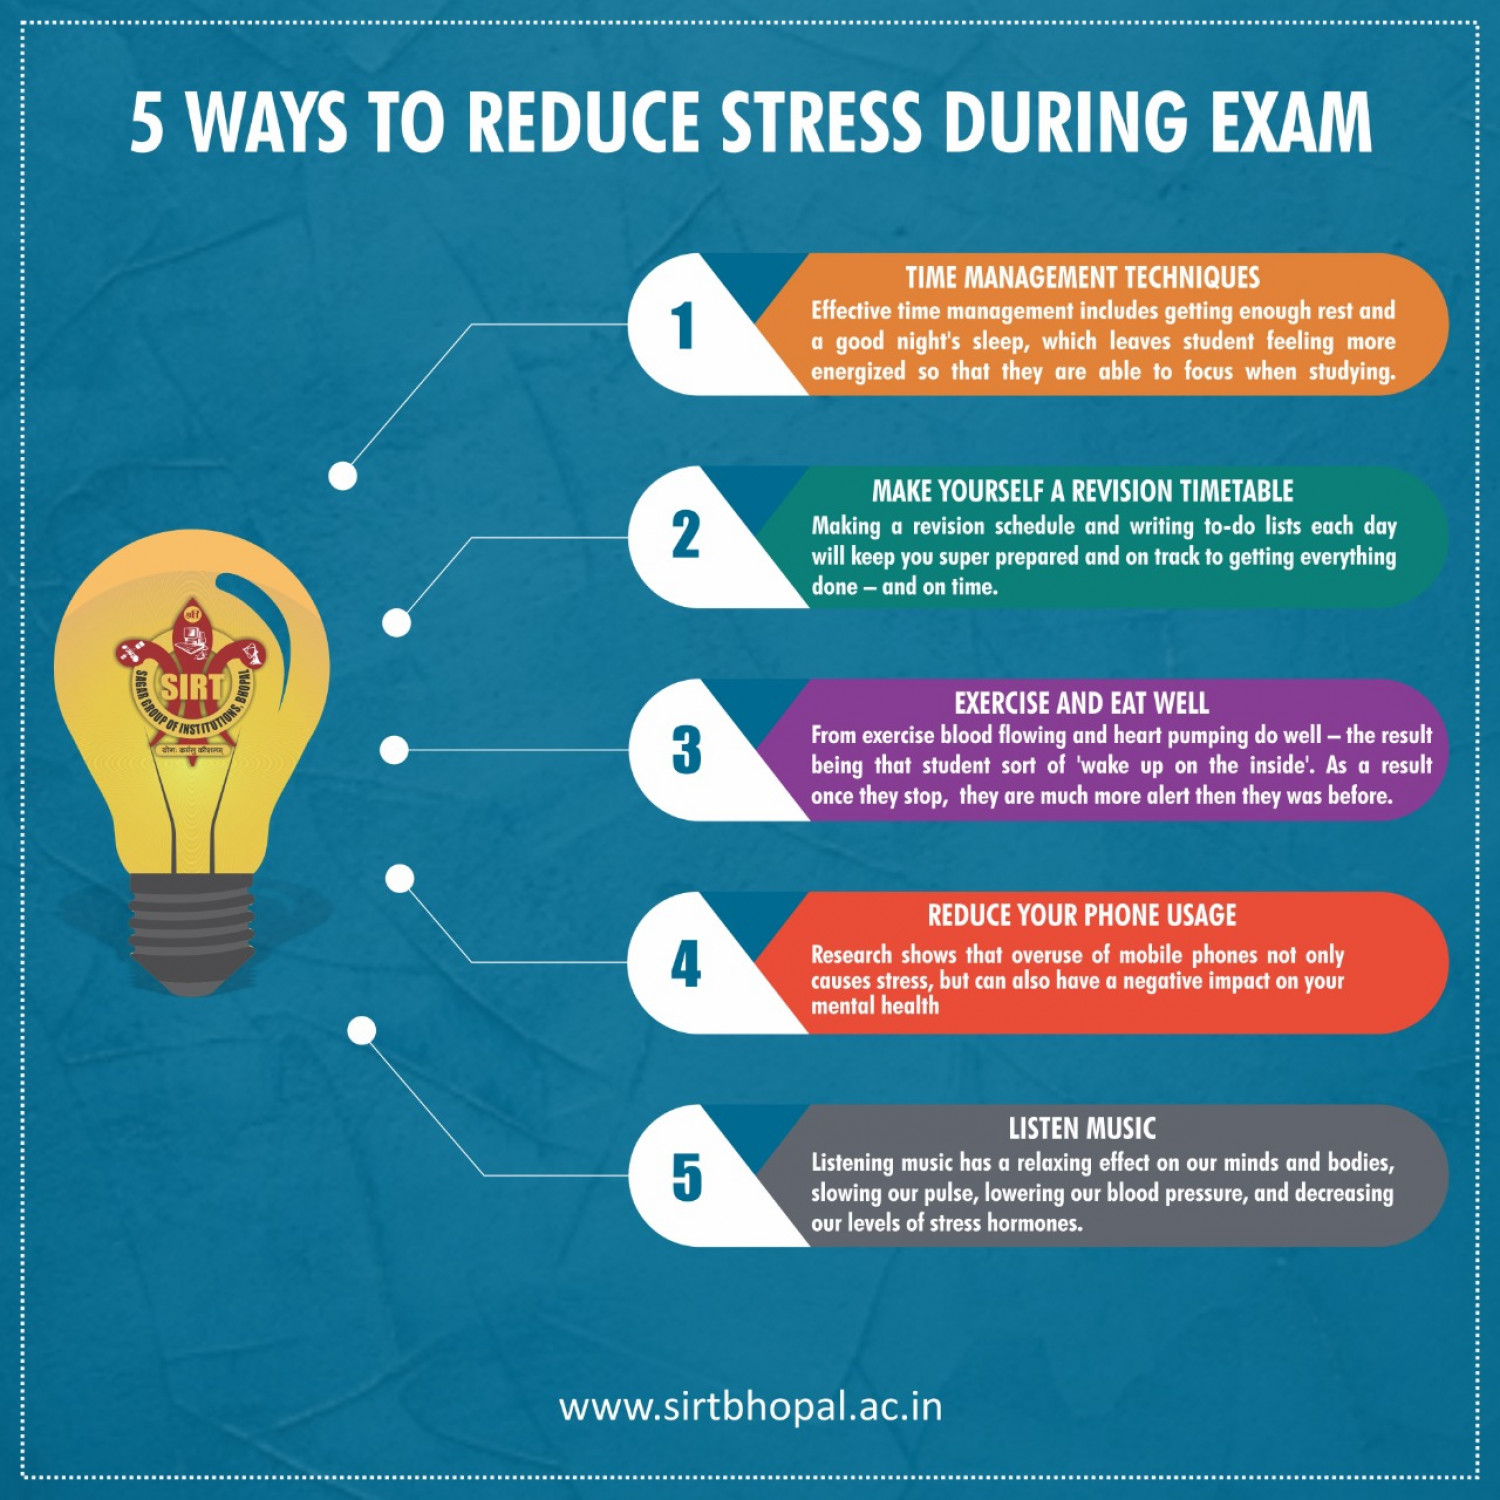 5 Ways to Reduce Stress during Exam Infographic